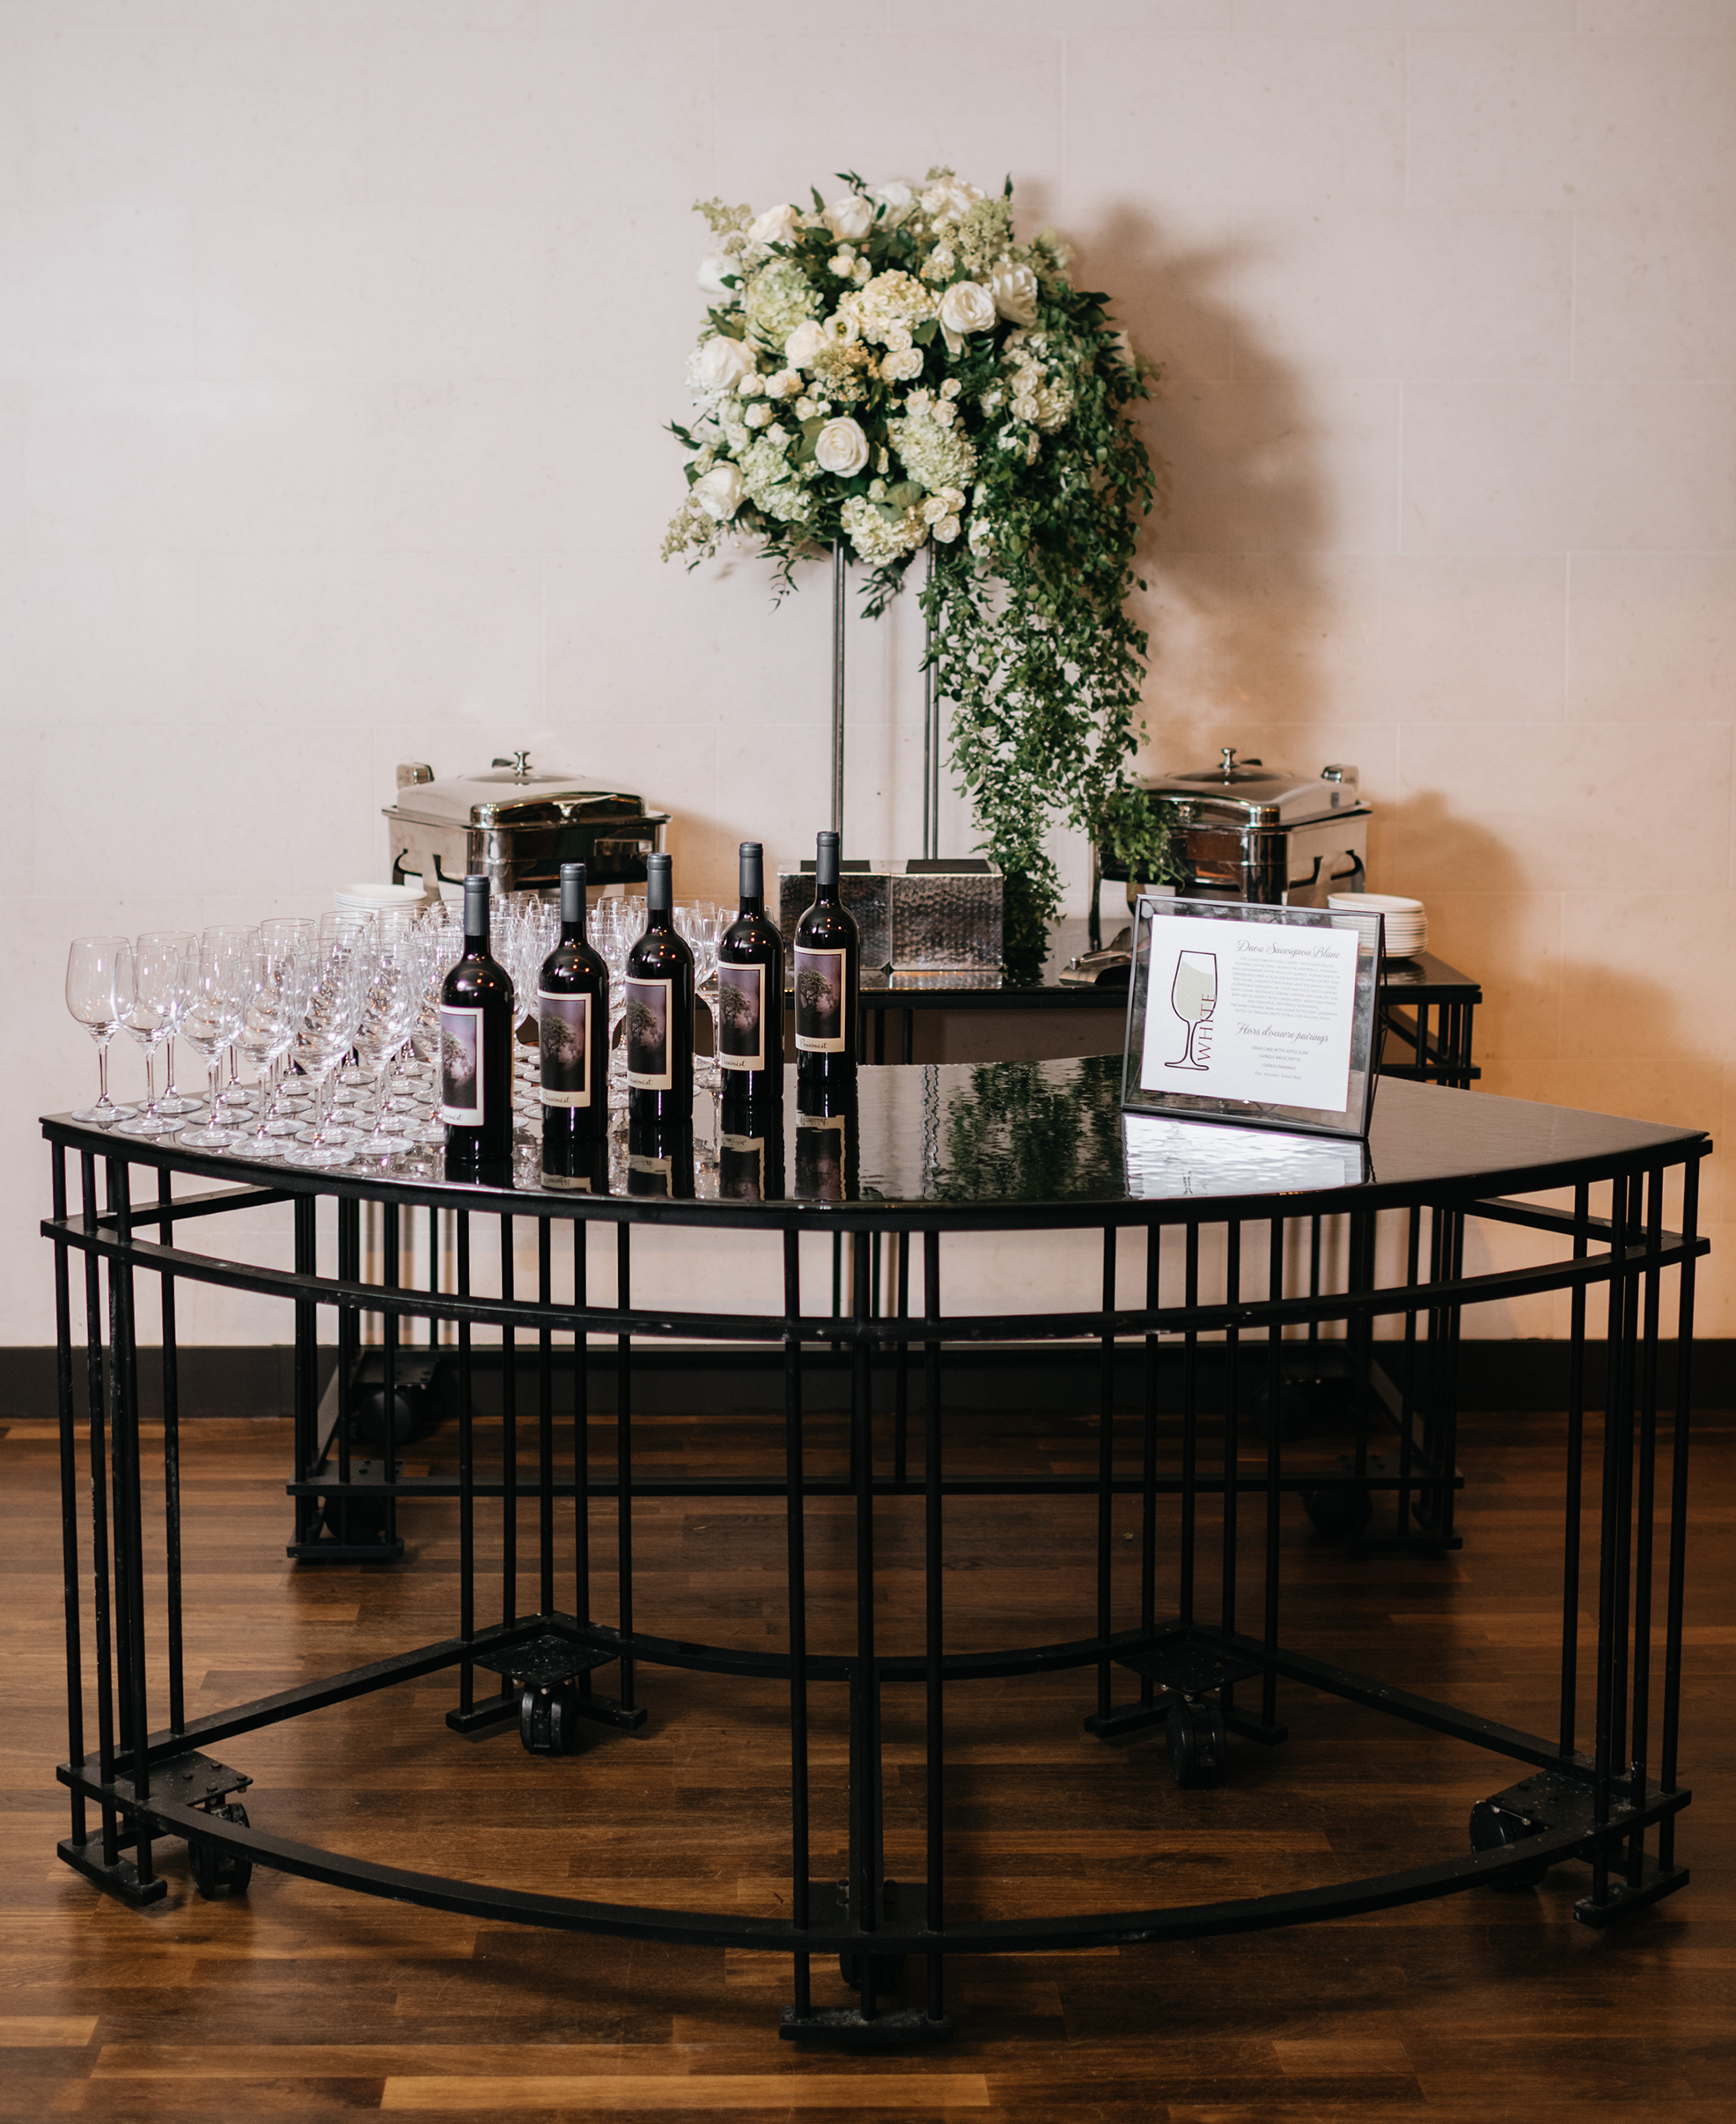 A wine tasting station at the cocktail hour of the wedding.